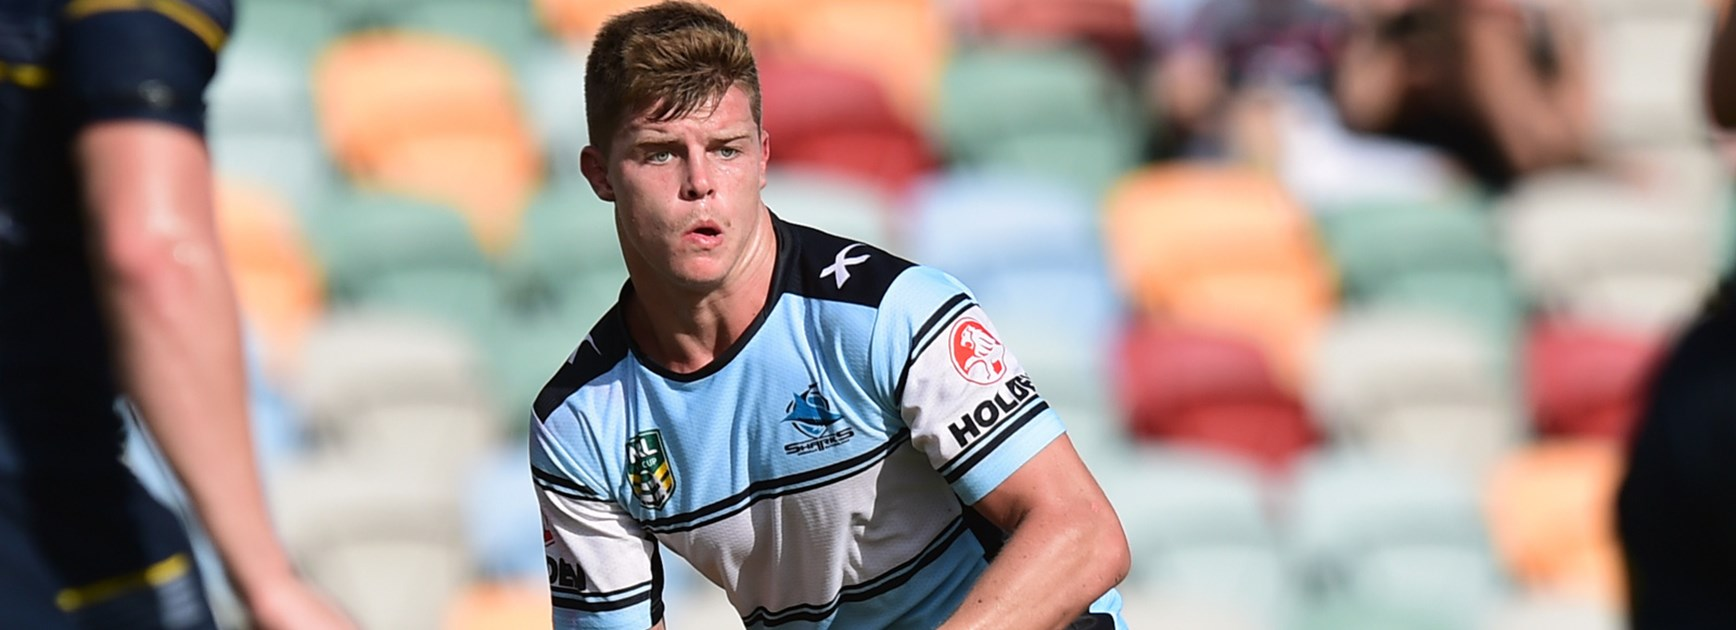 Sharks NYC dummy-half Jayden Brailey looks likely to move into the NRL side in the coming years.